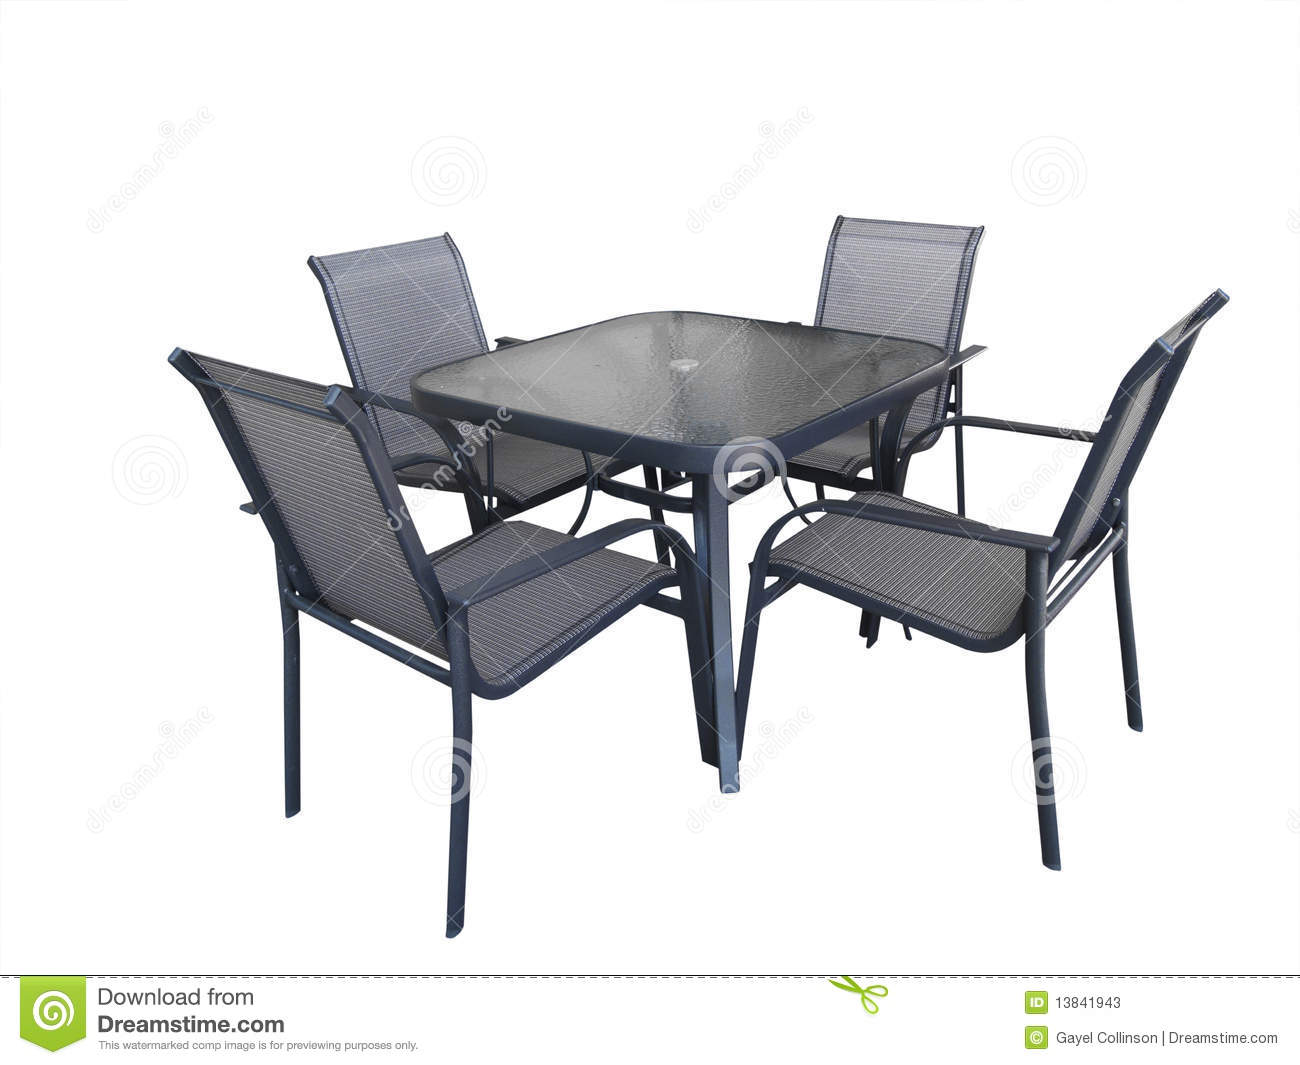 Outdoor glass table and chairs stock image image 13841943 for Small outdoor table and chairs